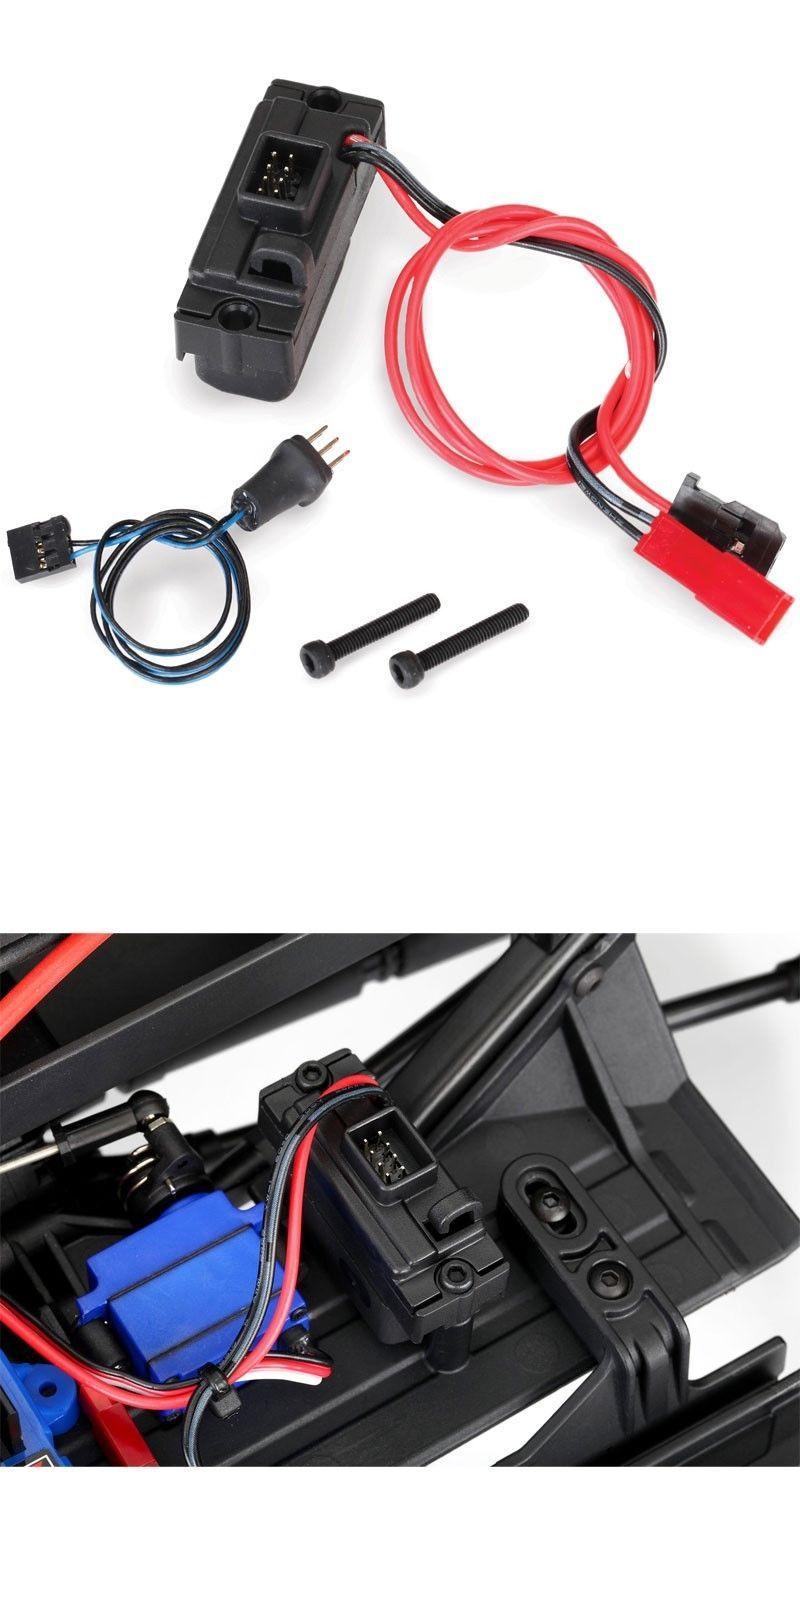 Lighting and Lamps 182177: Traxxas 8028 Trx-4 Power Supply And Wiring  Harness For Led Lights - Tra8028 -> BUY IT NOW ONLY: $19.95 on eBay!